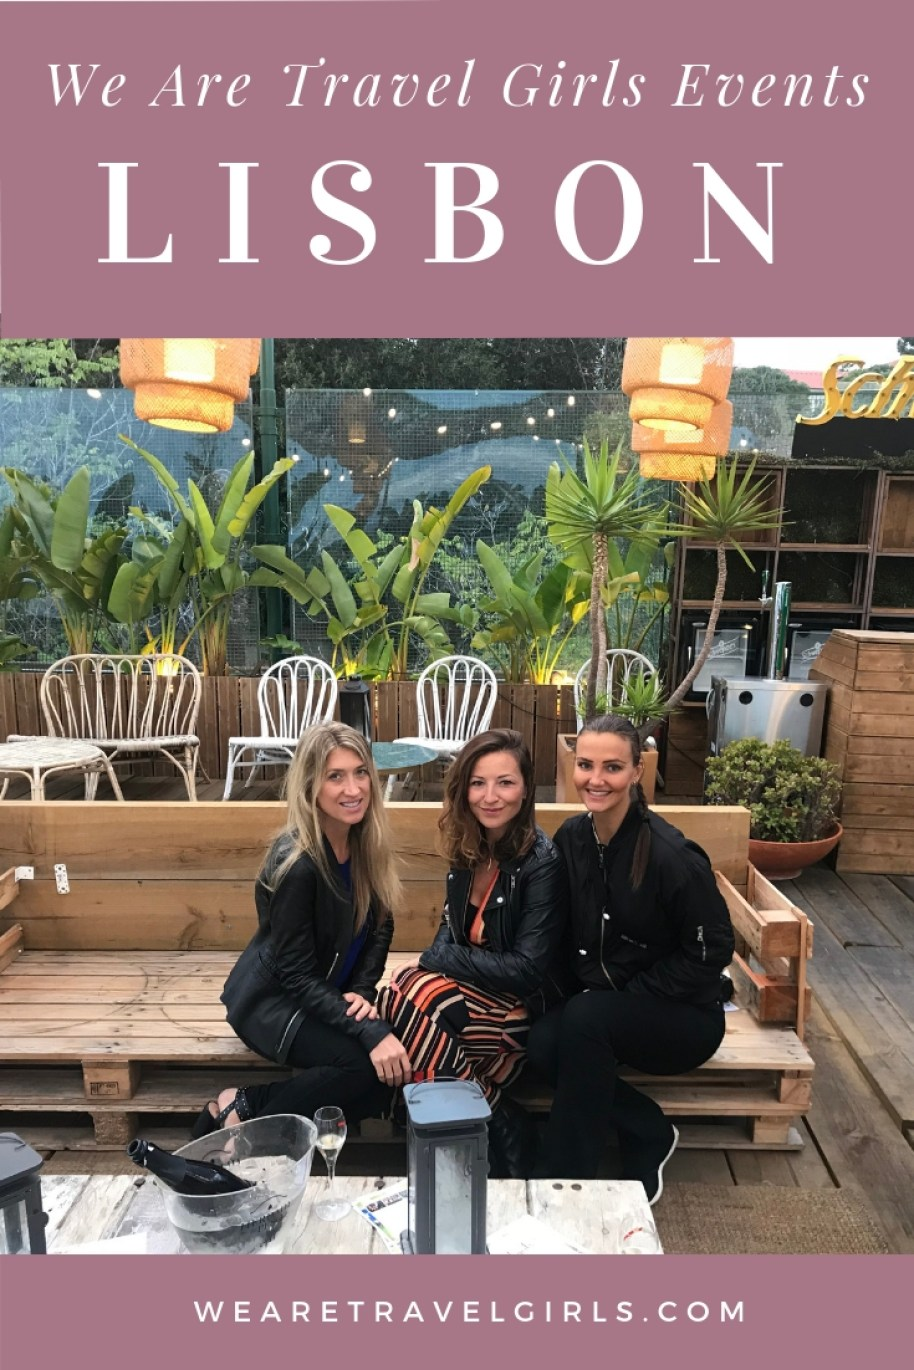 WE ARE TRAVEL GIRLS EVENTS - LISBON MEET UP 2018